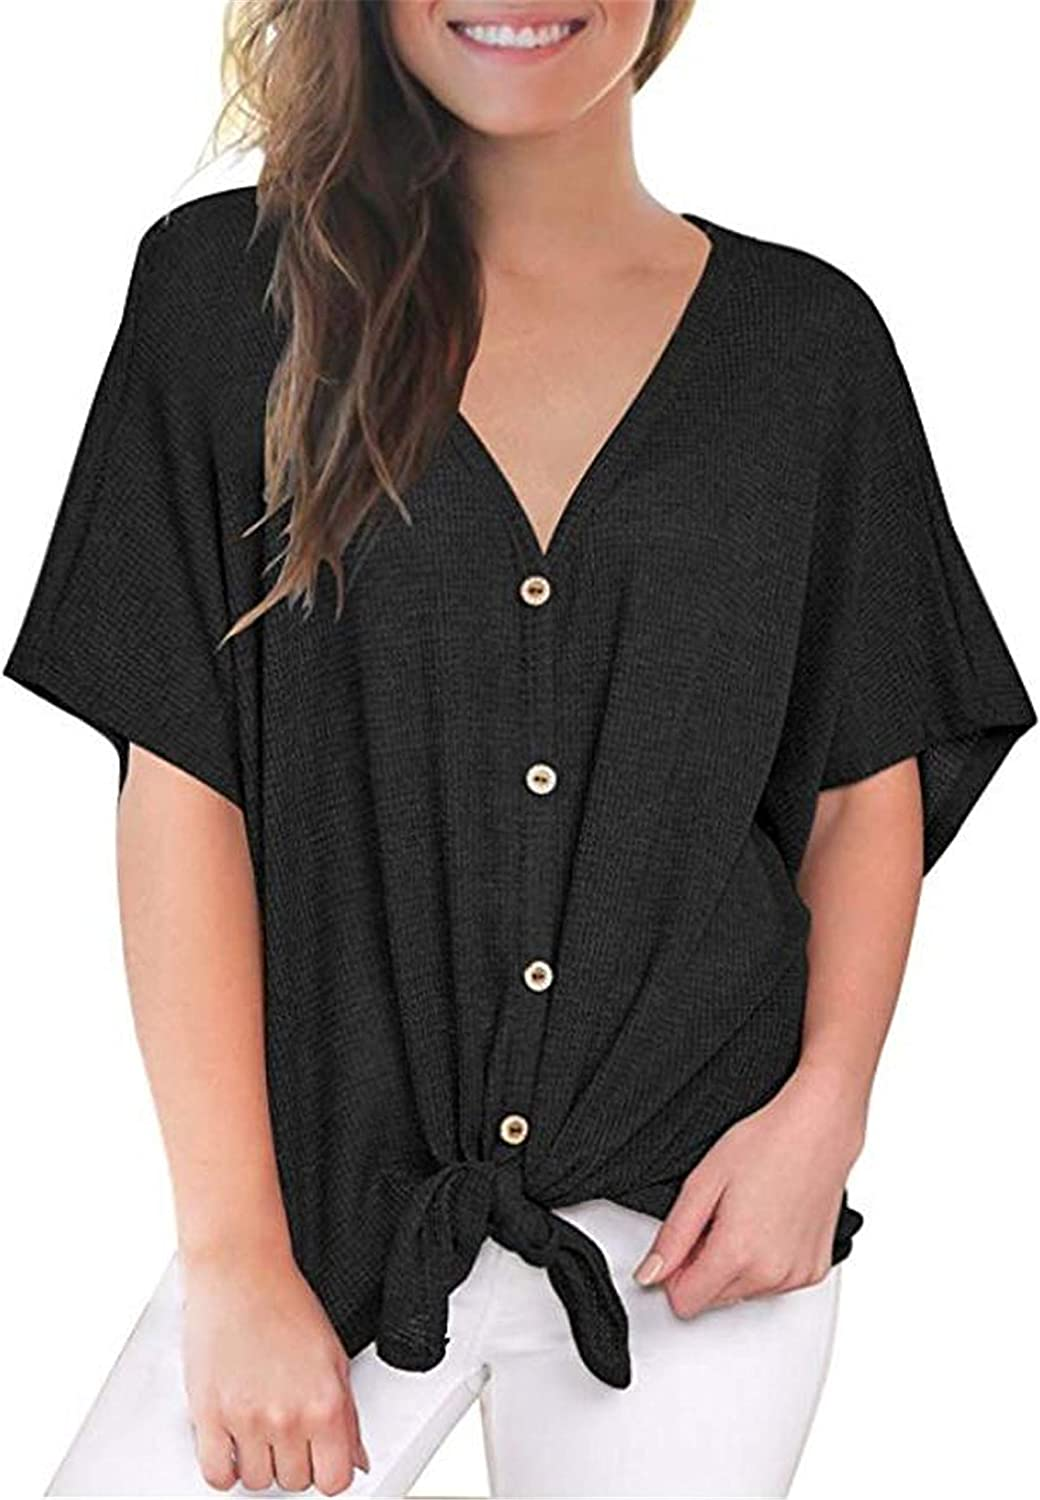 UGET Womens Loose Blouse V Neck Button Down T Shirts Tie Front Knot Top Casual Summer Shirt